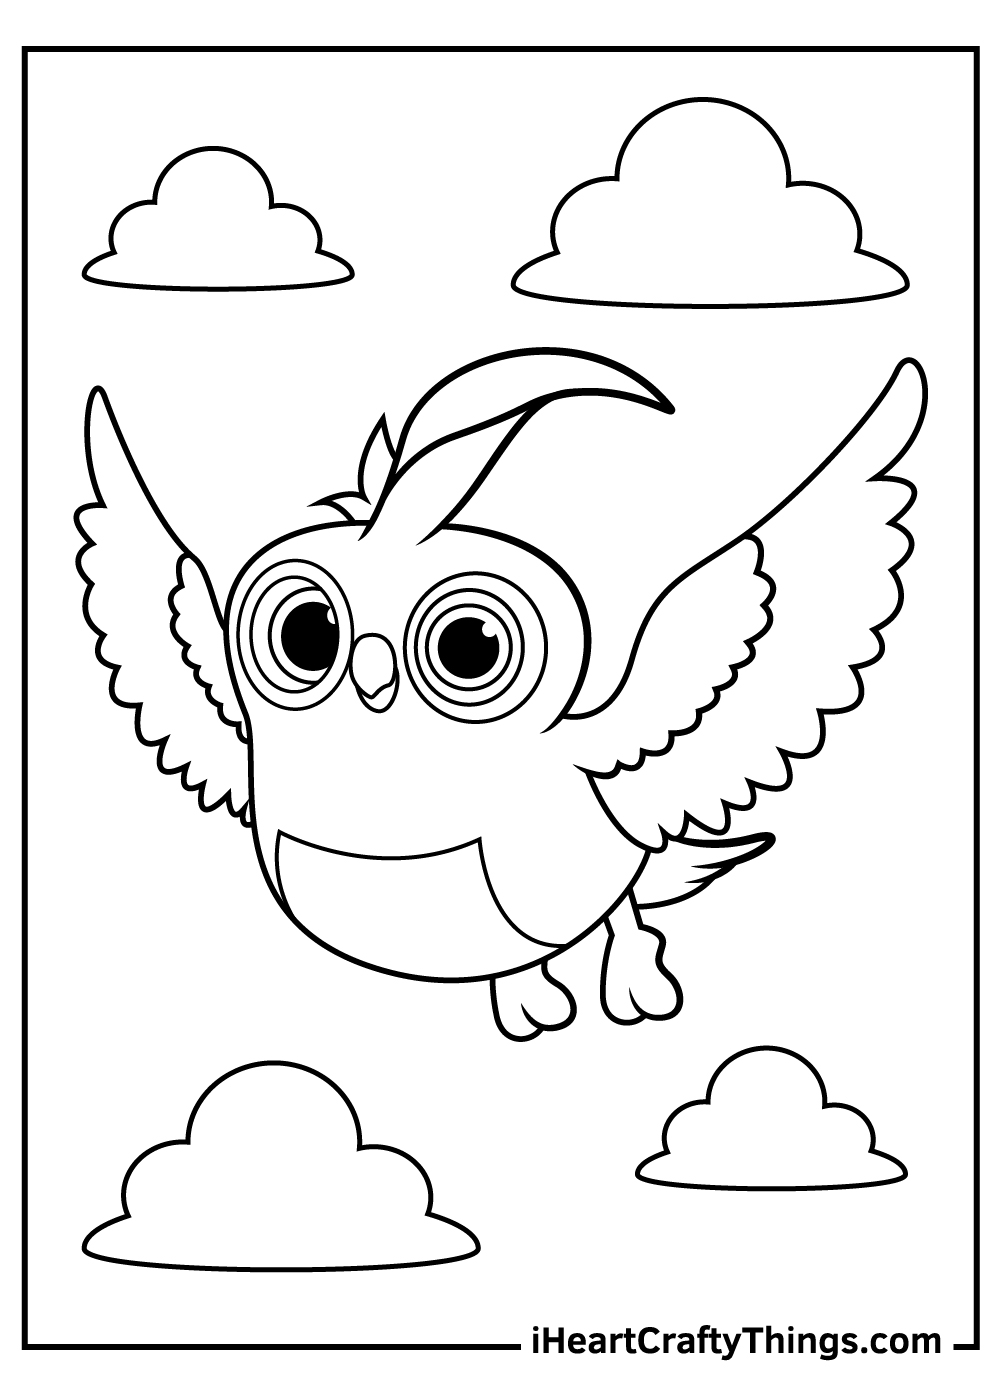 pepper lego friends coloring pages free printables